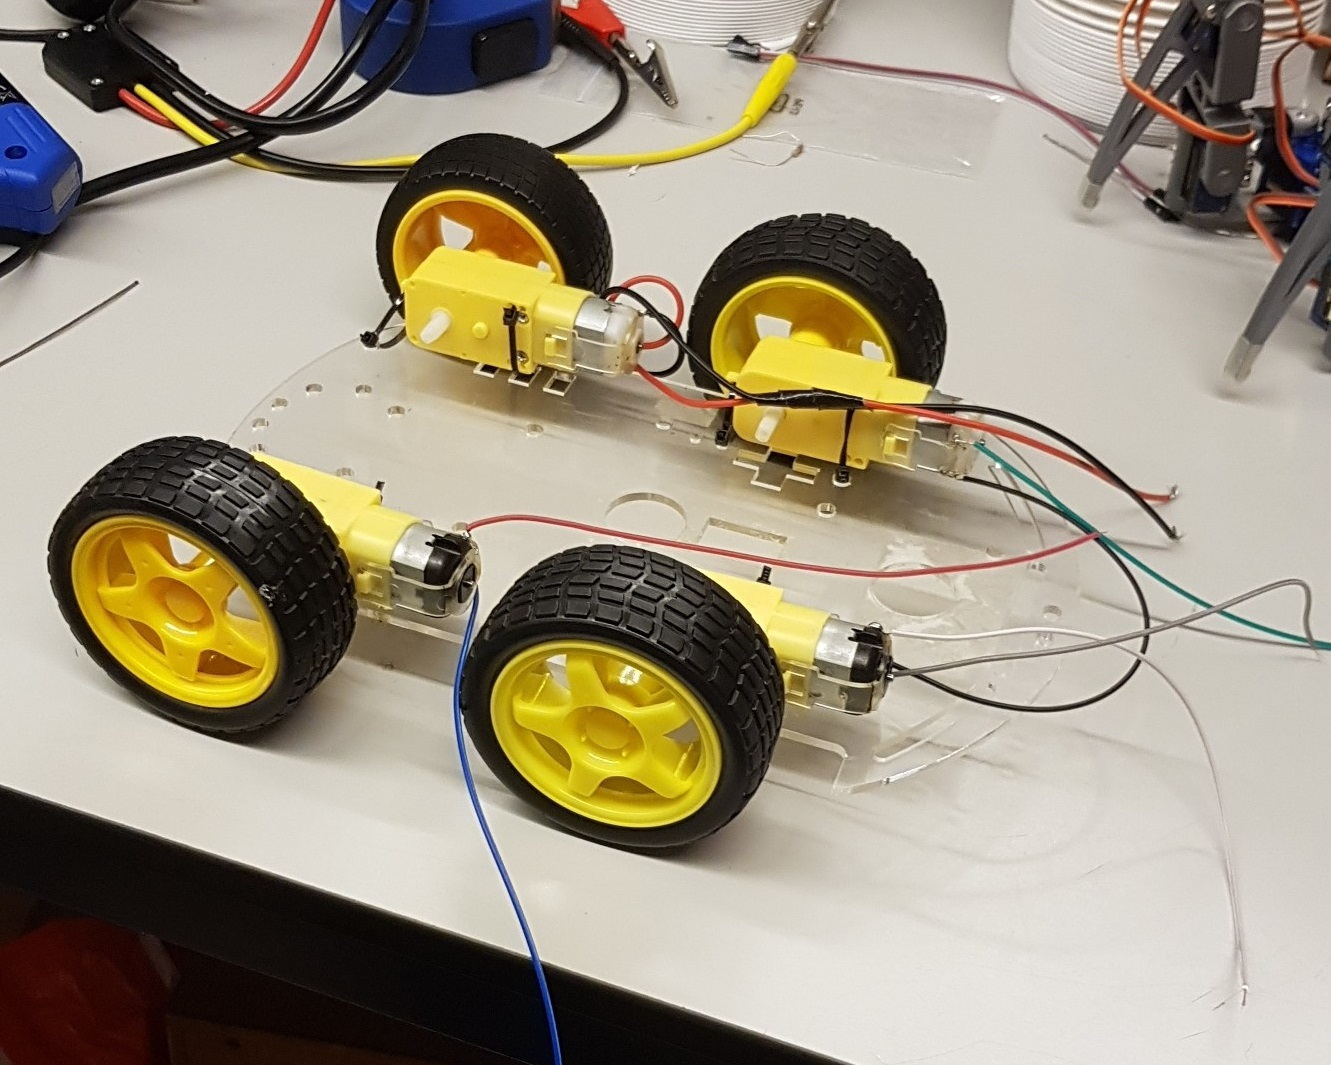 Picture of Wheels and Baseplates